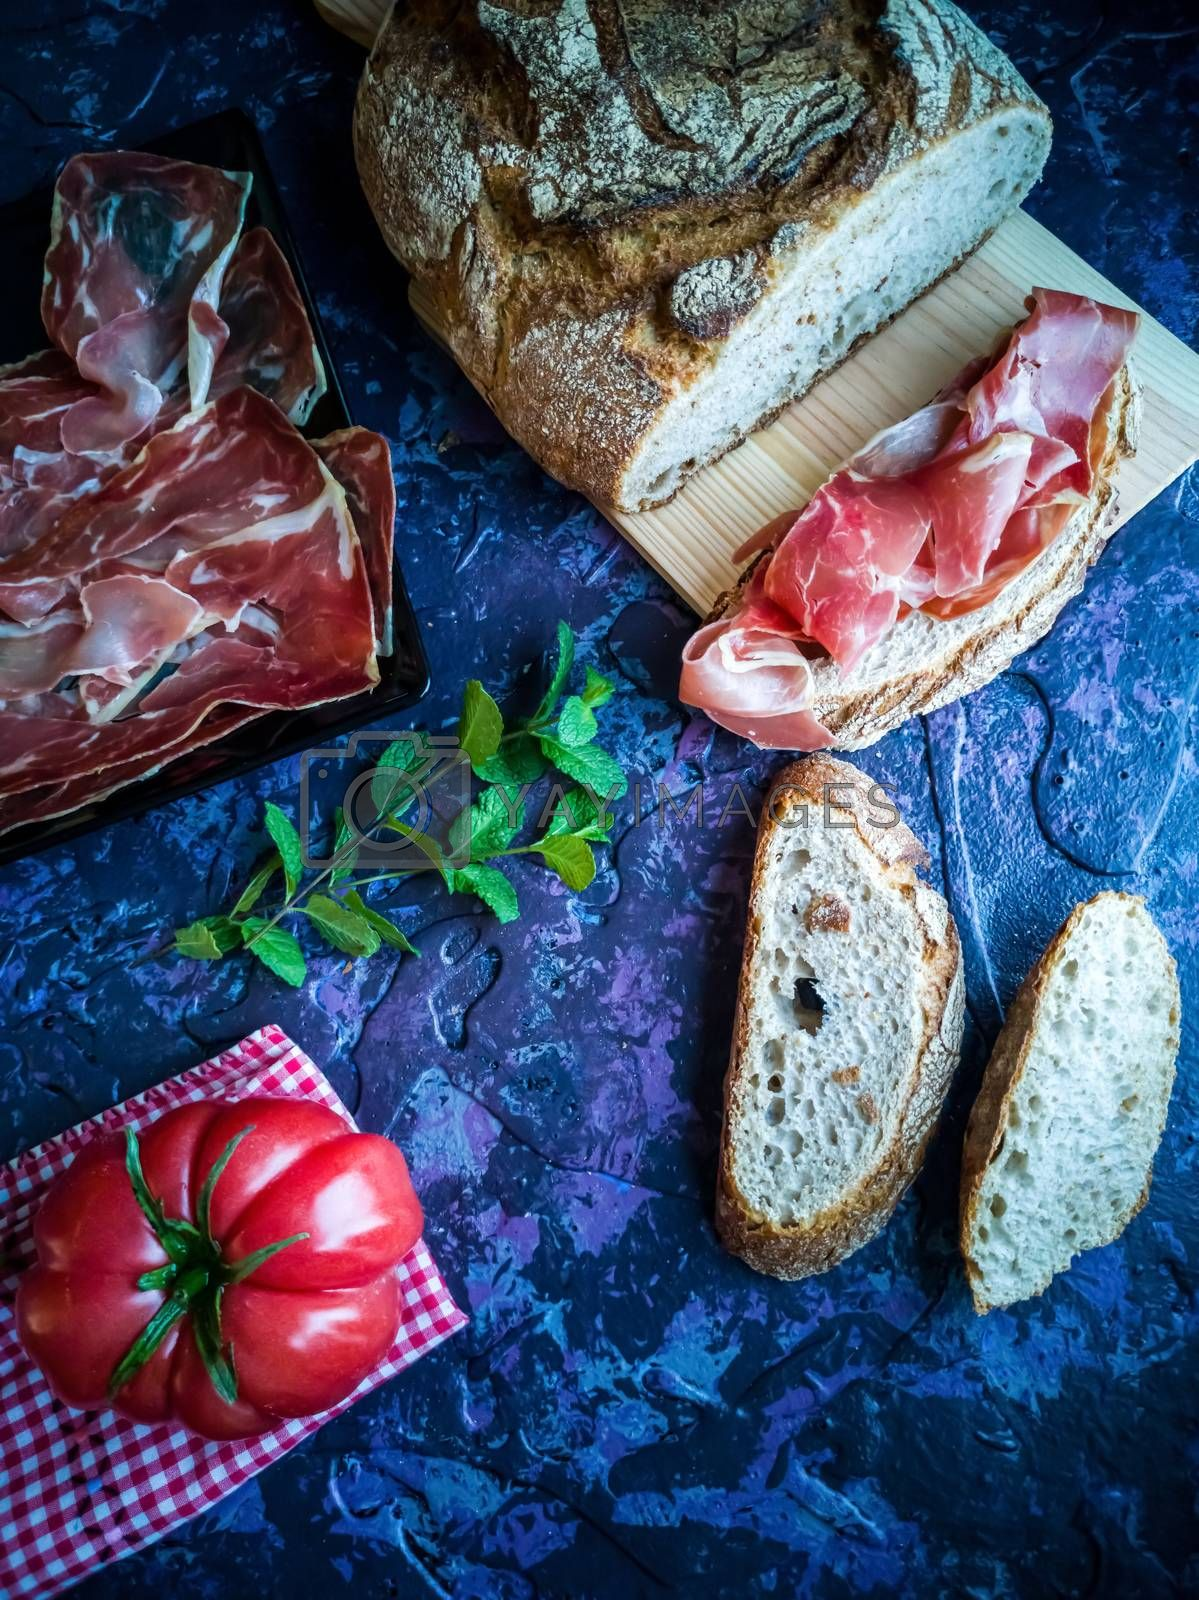 Ham, tomato, bread and herbs in composition on dark background with rough texture